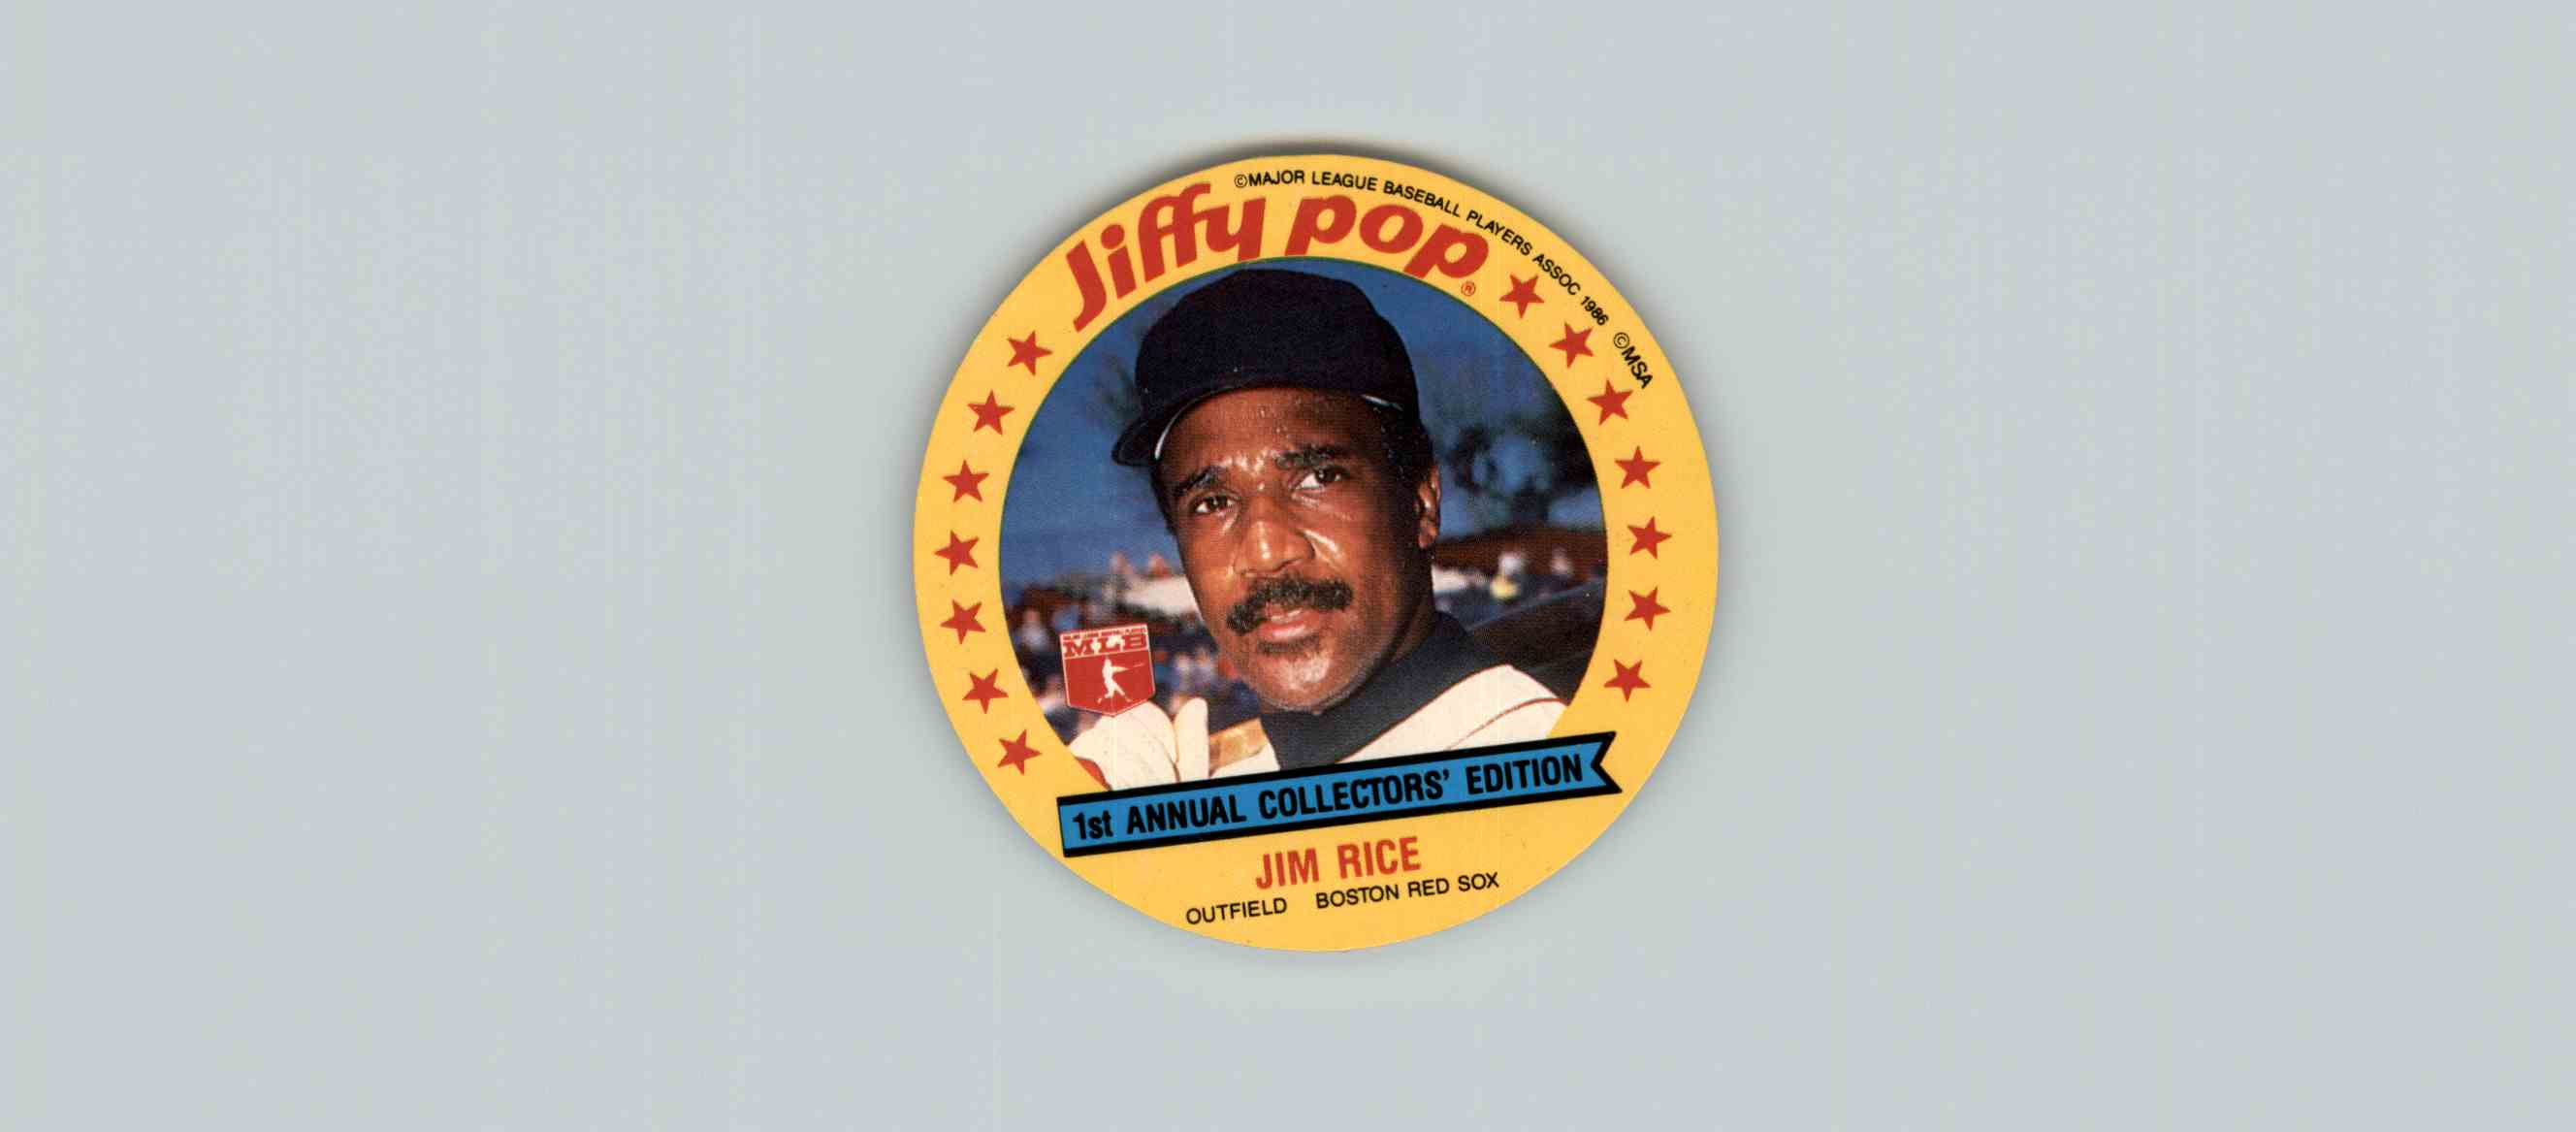 525 Jim Rice Trading Cards For Sale